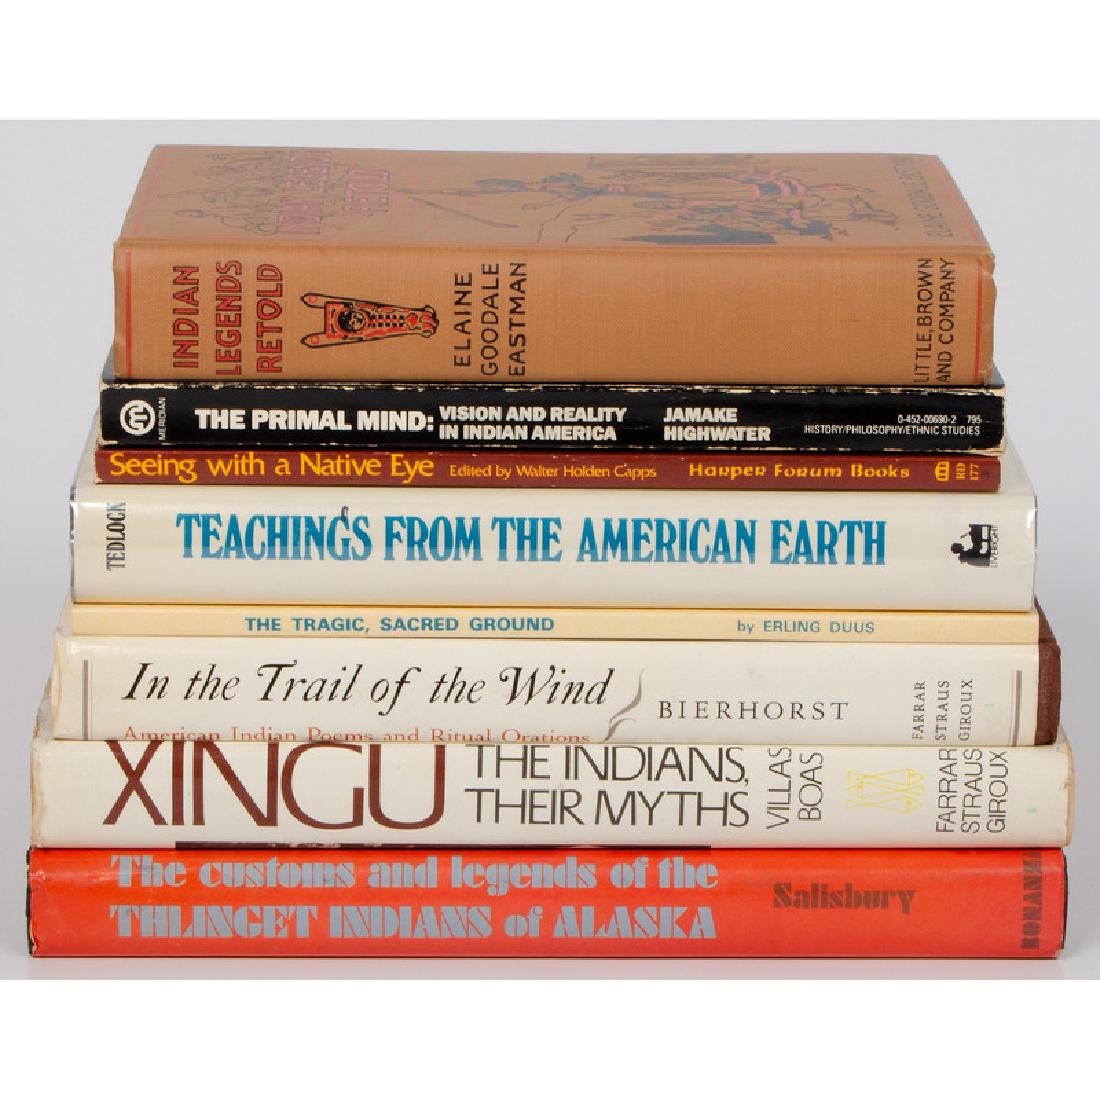 [Ethnography] Books on Indian Religion, Myths, and